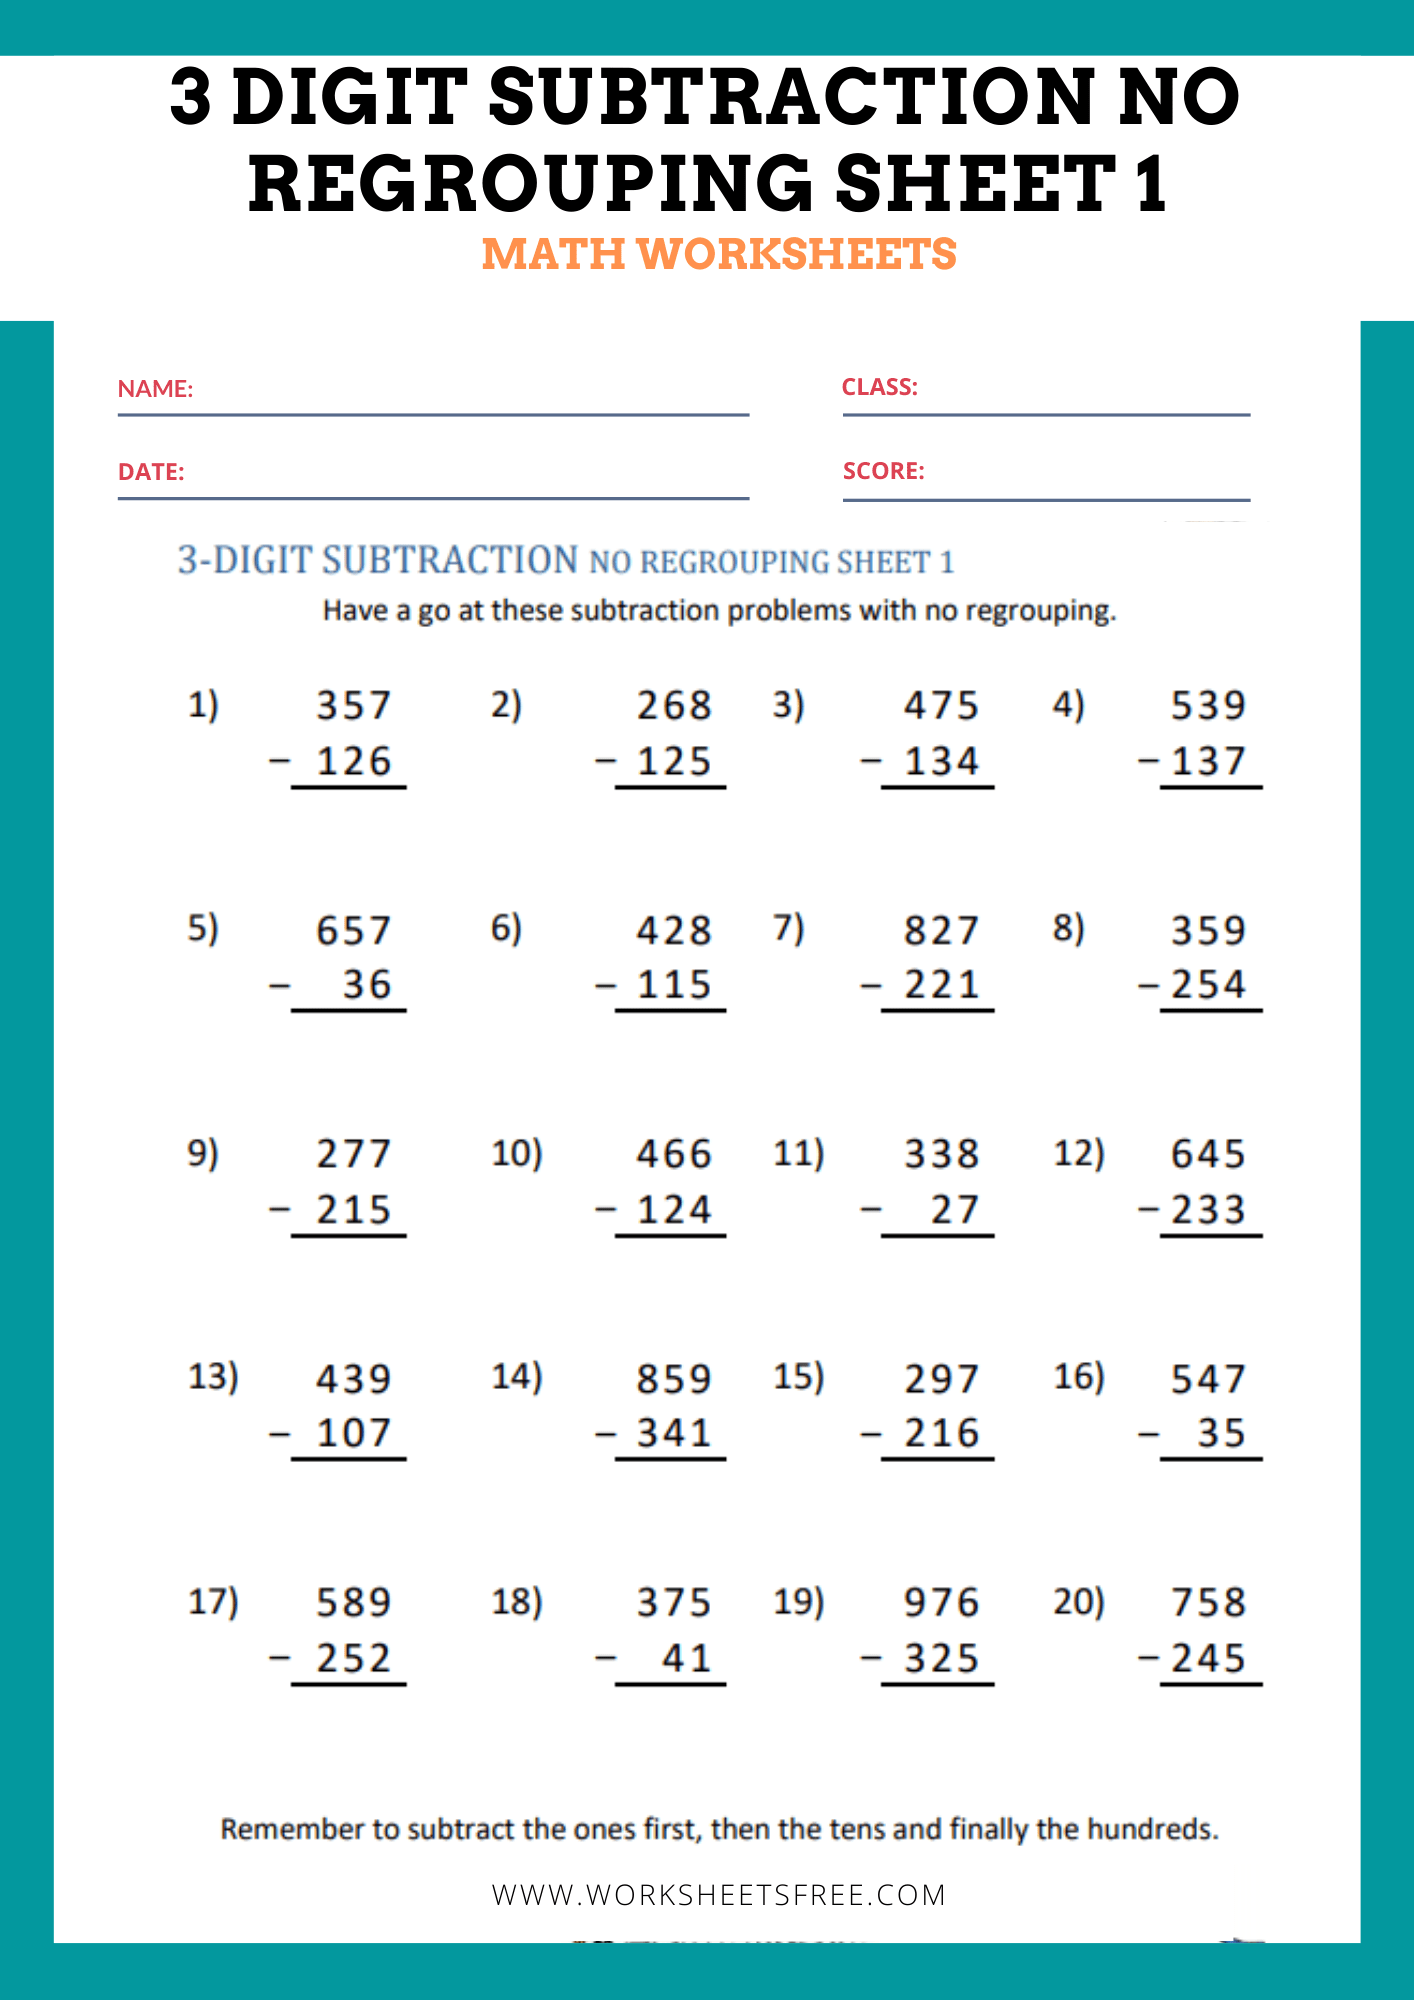 3 Digit Subtraction No Regrouping Sheet 1